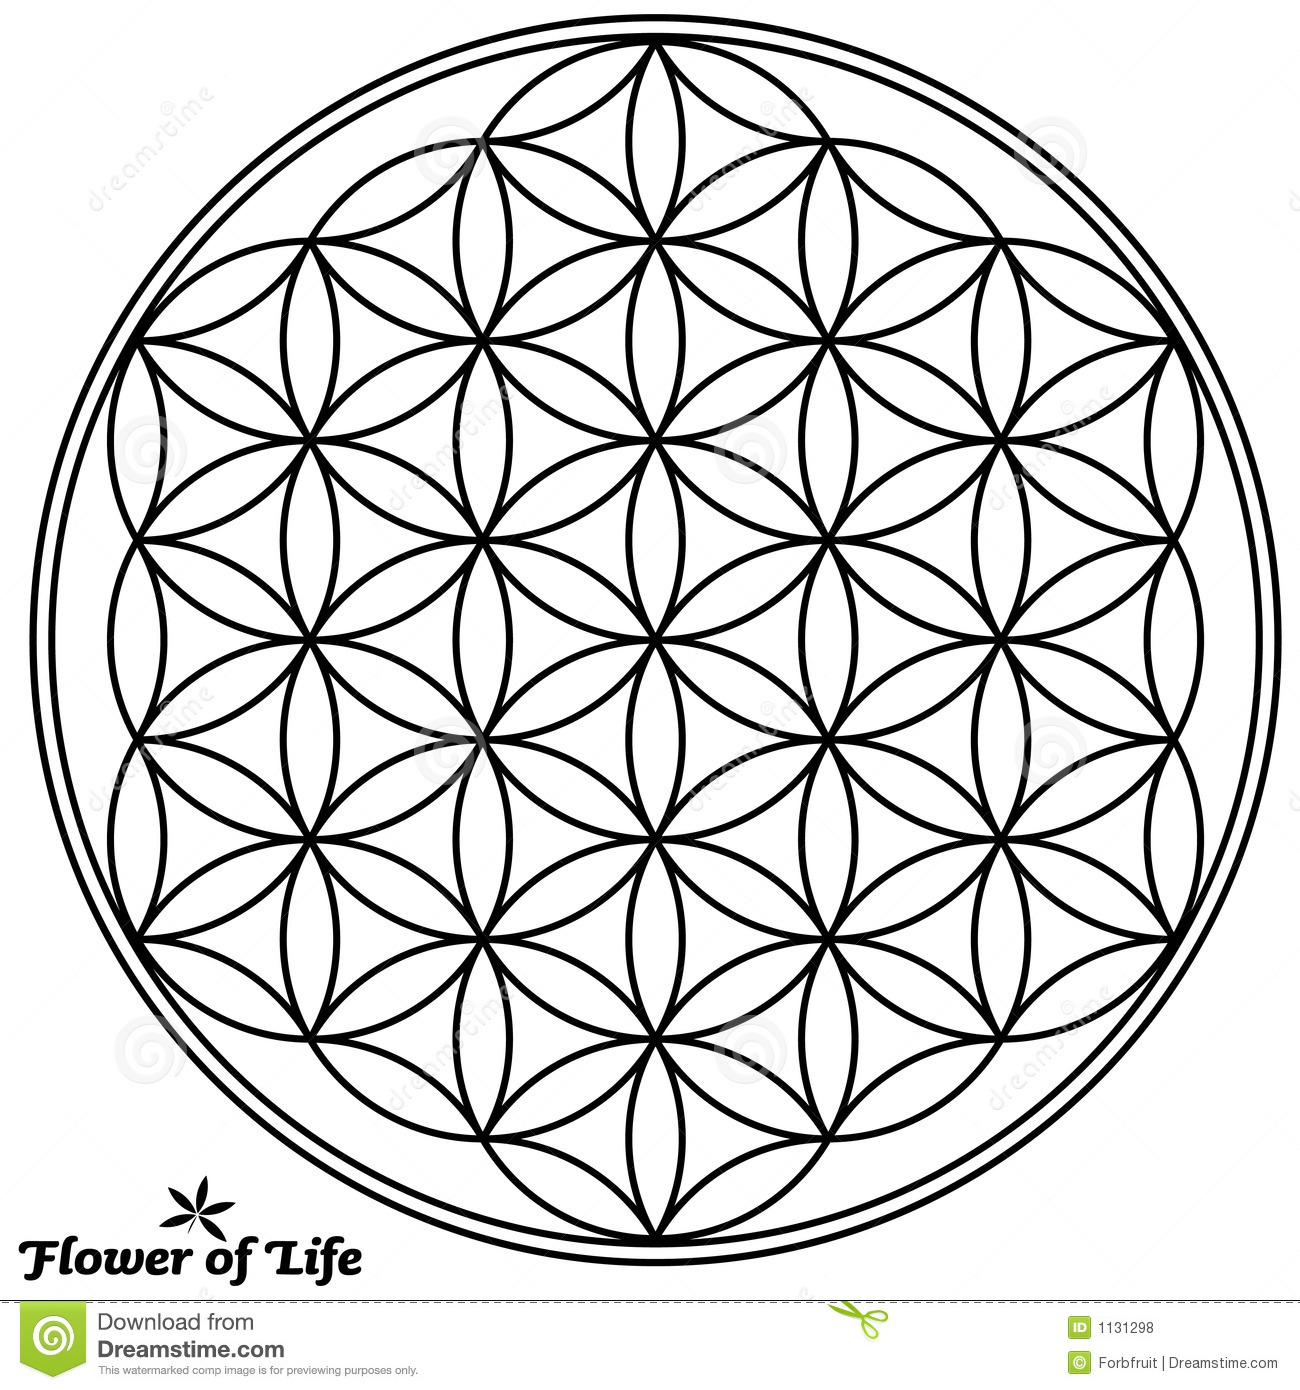 flower of life book pdf